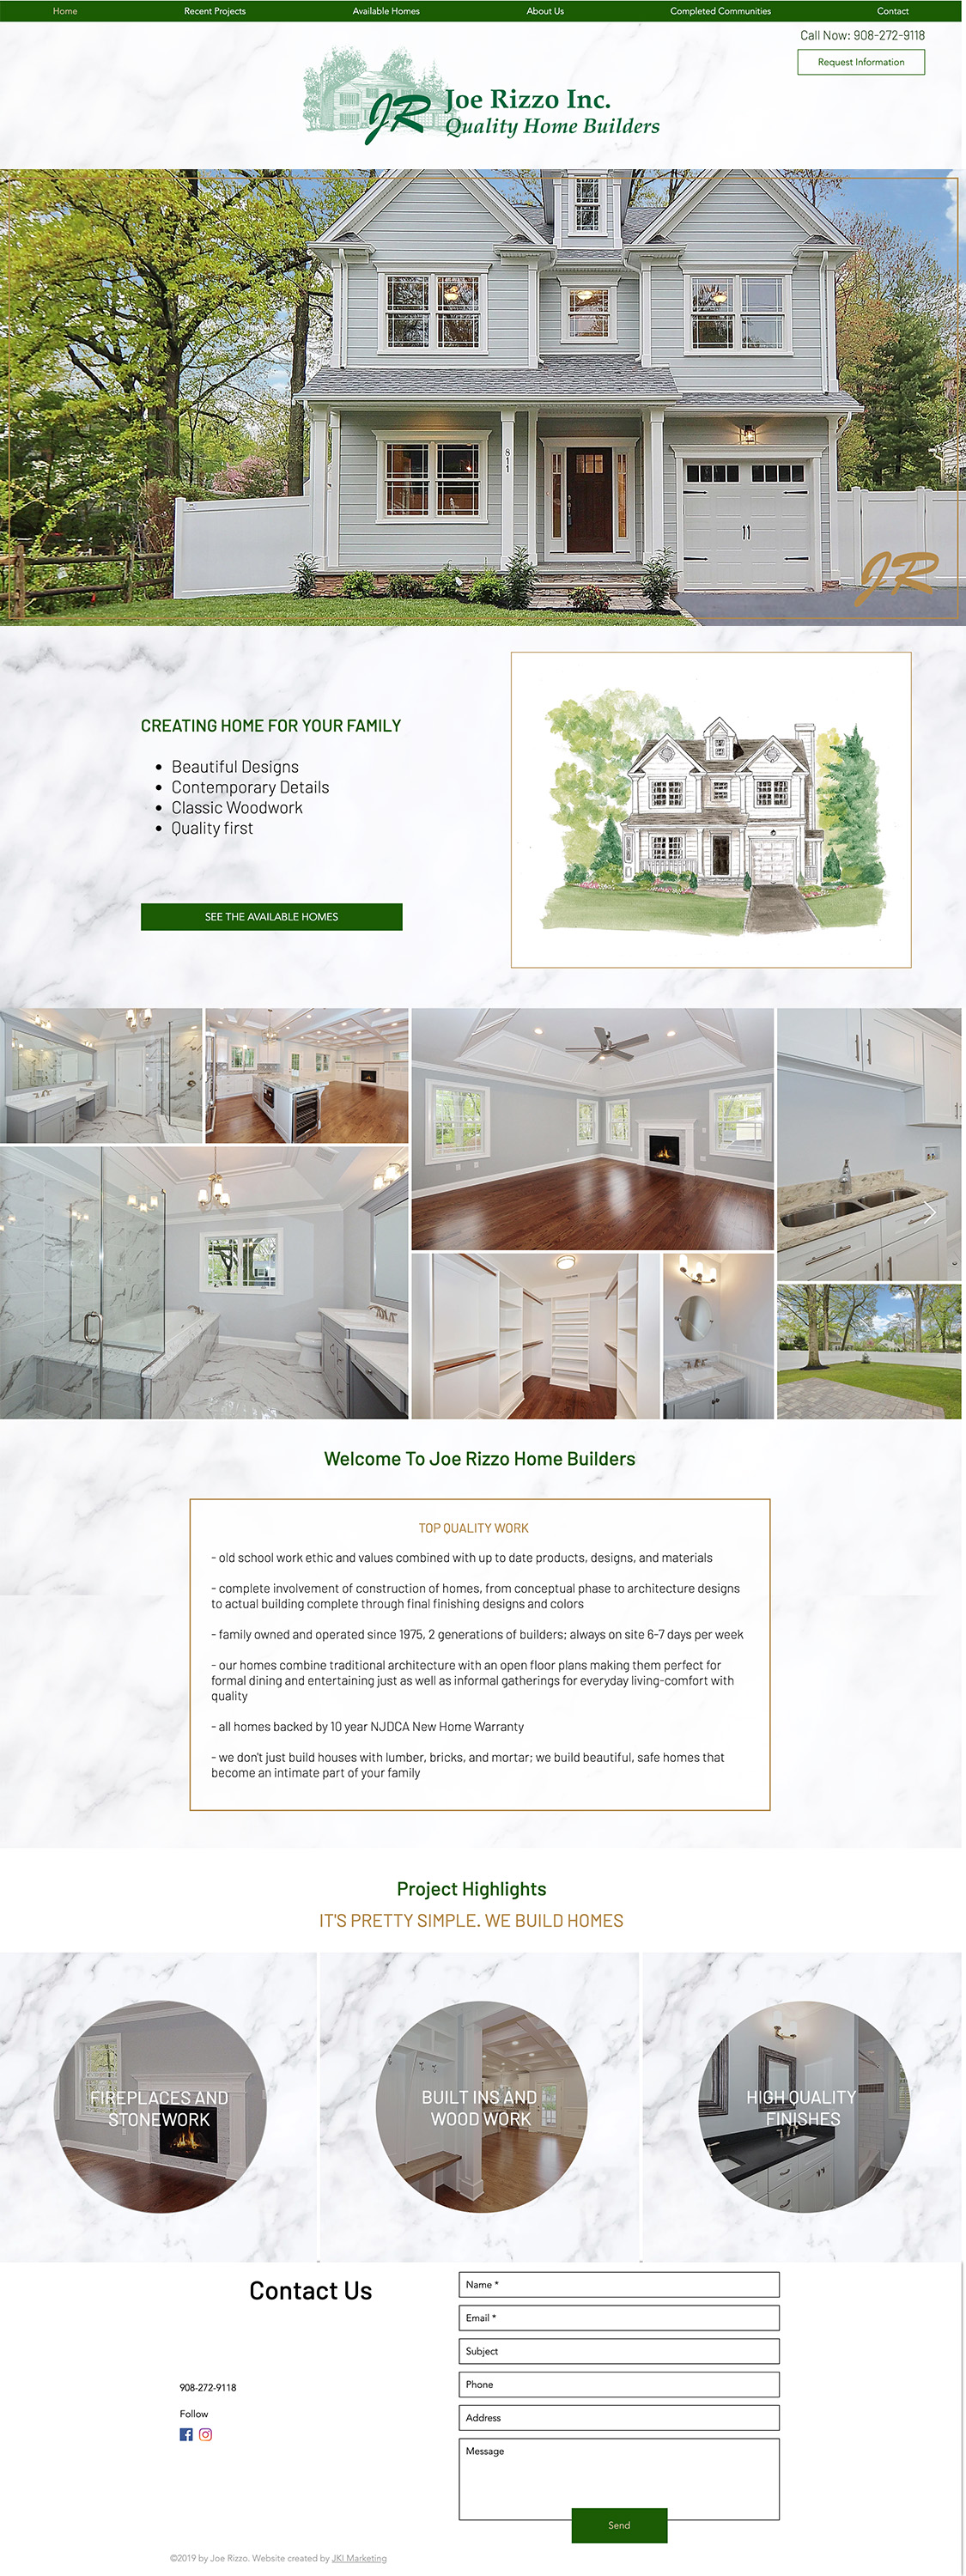 Joe Rizzo Website Design